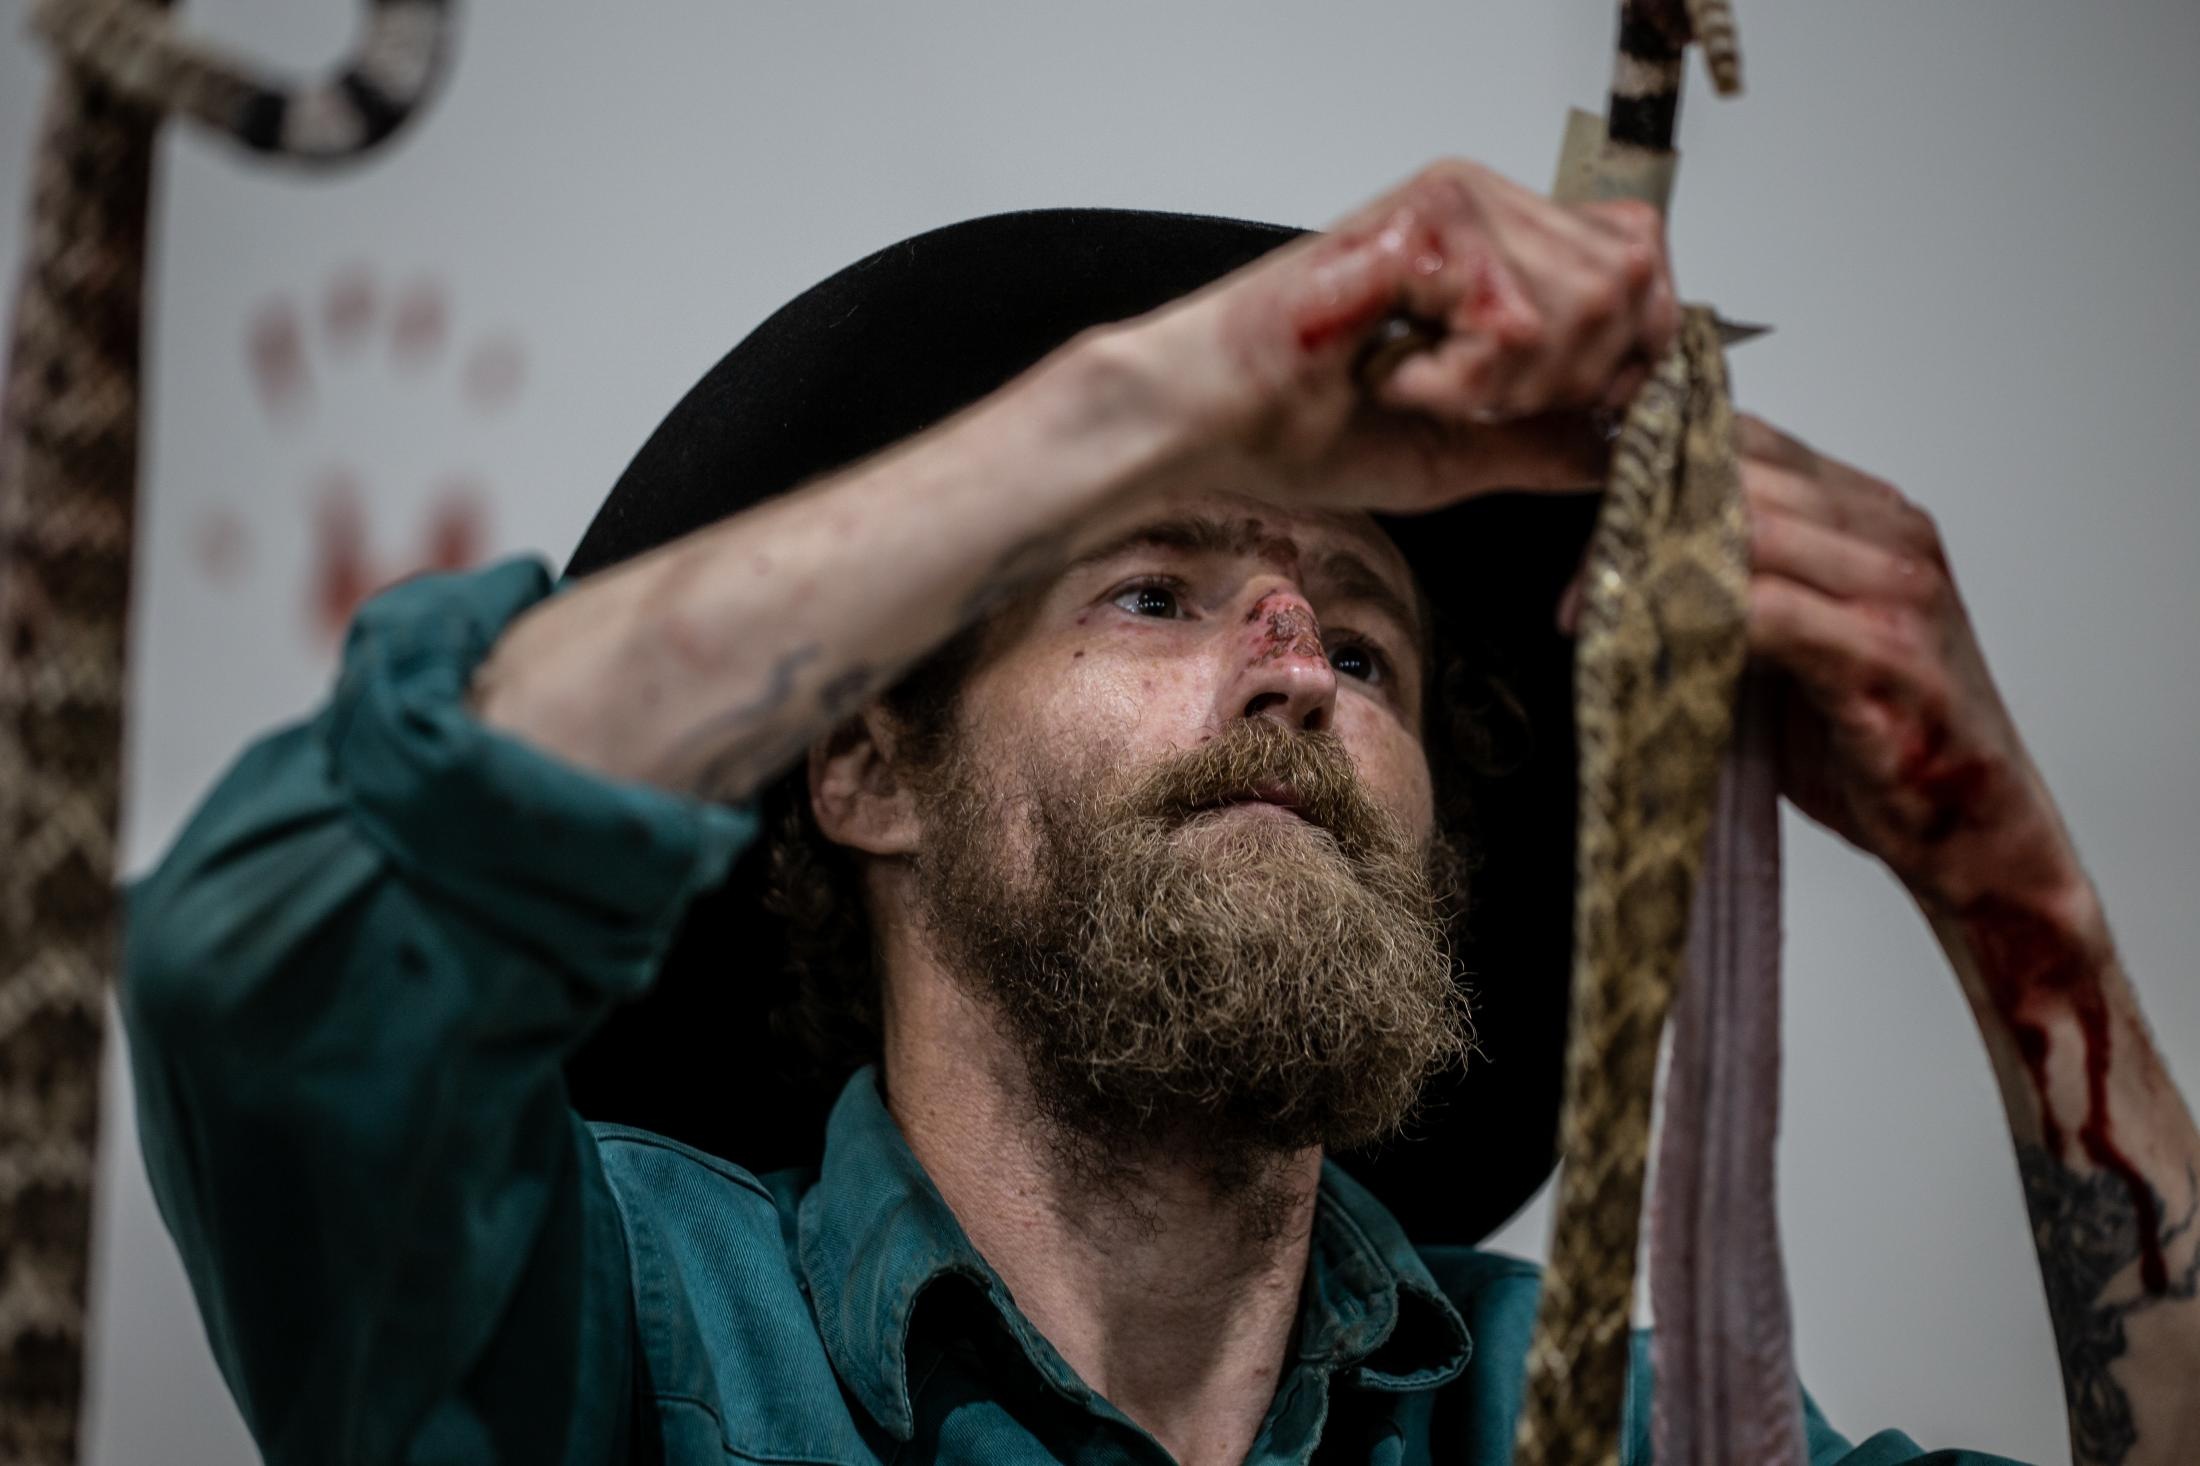 A man focuses on removing the skin of a beheaded rattlesnake at the Sweetwater Rattlesnake Roundup.